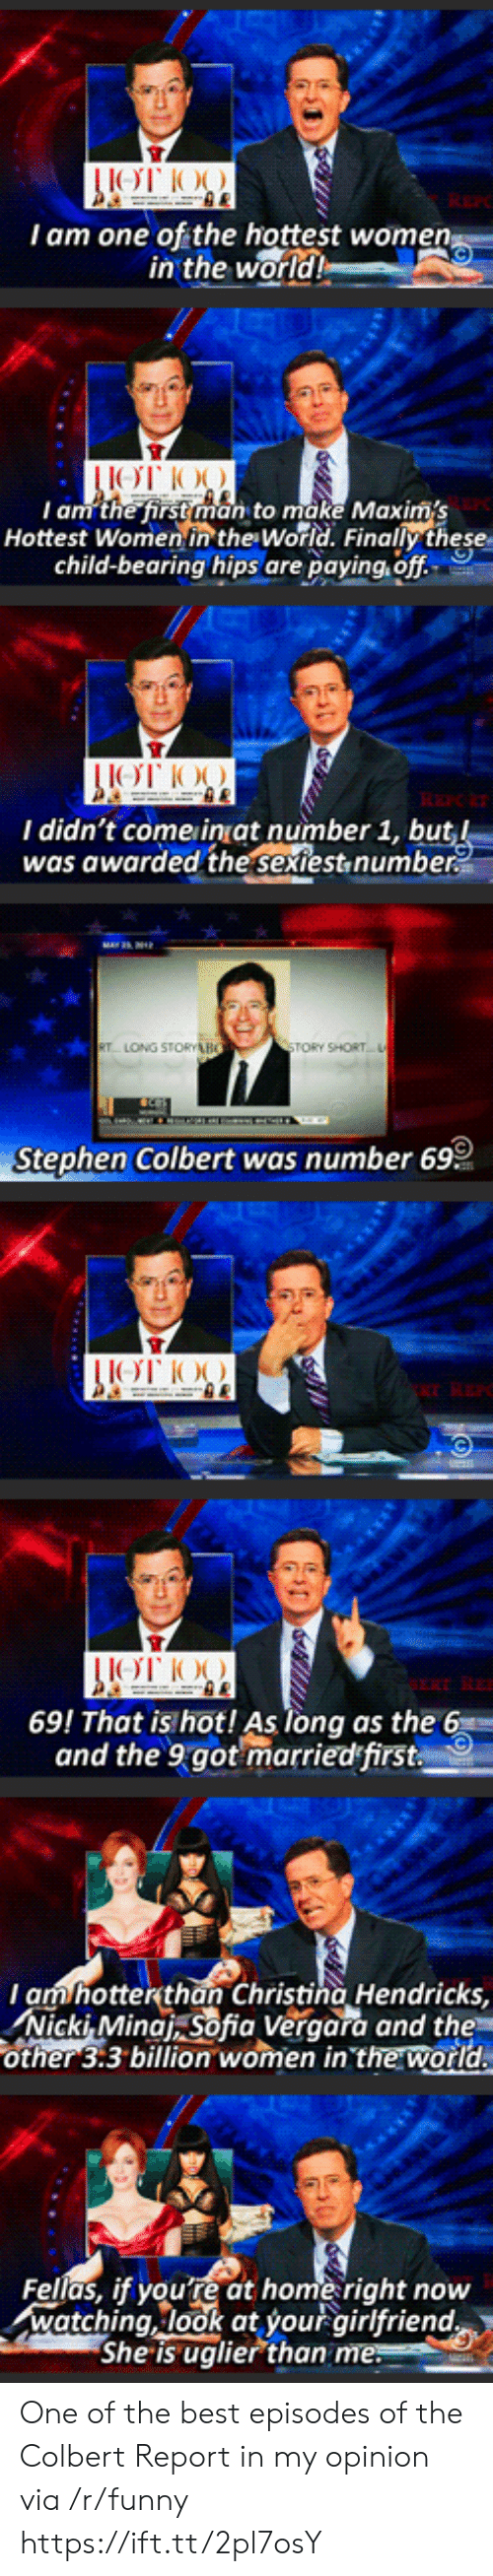 I Am One: I am one of the hottest wome  in the  world  I am the first man to make Maxims  Hottest Women in the World. Finally these  child-bearing hips are paying, off  I didn't come inat number 1, bu  was awarded the sextest,numbe  TORY SHORT  Stephen Colbert was number 69  69! That is hot! As long as the 6  and the 9got marriedfirst  am hotterthan Christina Hendricks,  Nicki, Minat sofia Veraara and the  other 3:3 billion women in the world  Fellas, if youre at home right now  watching, look at your airlfriend  She is uglier than One of the best episodes of the Colbert Report in my opinion via /r/funny https://ift.tt/2pl7osY